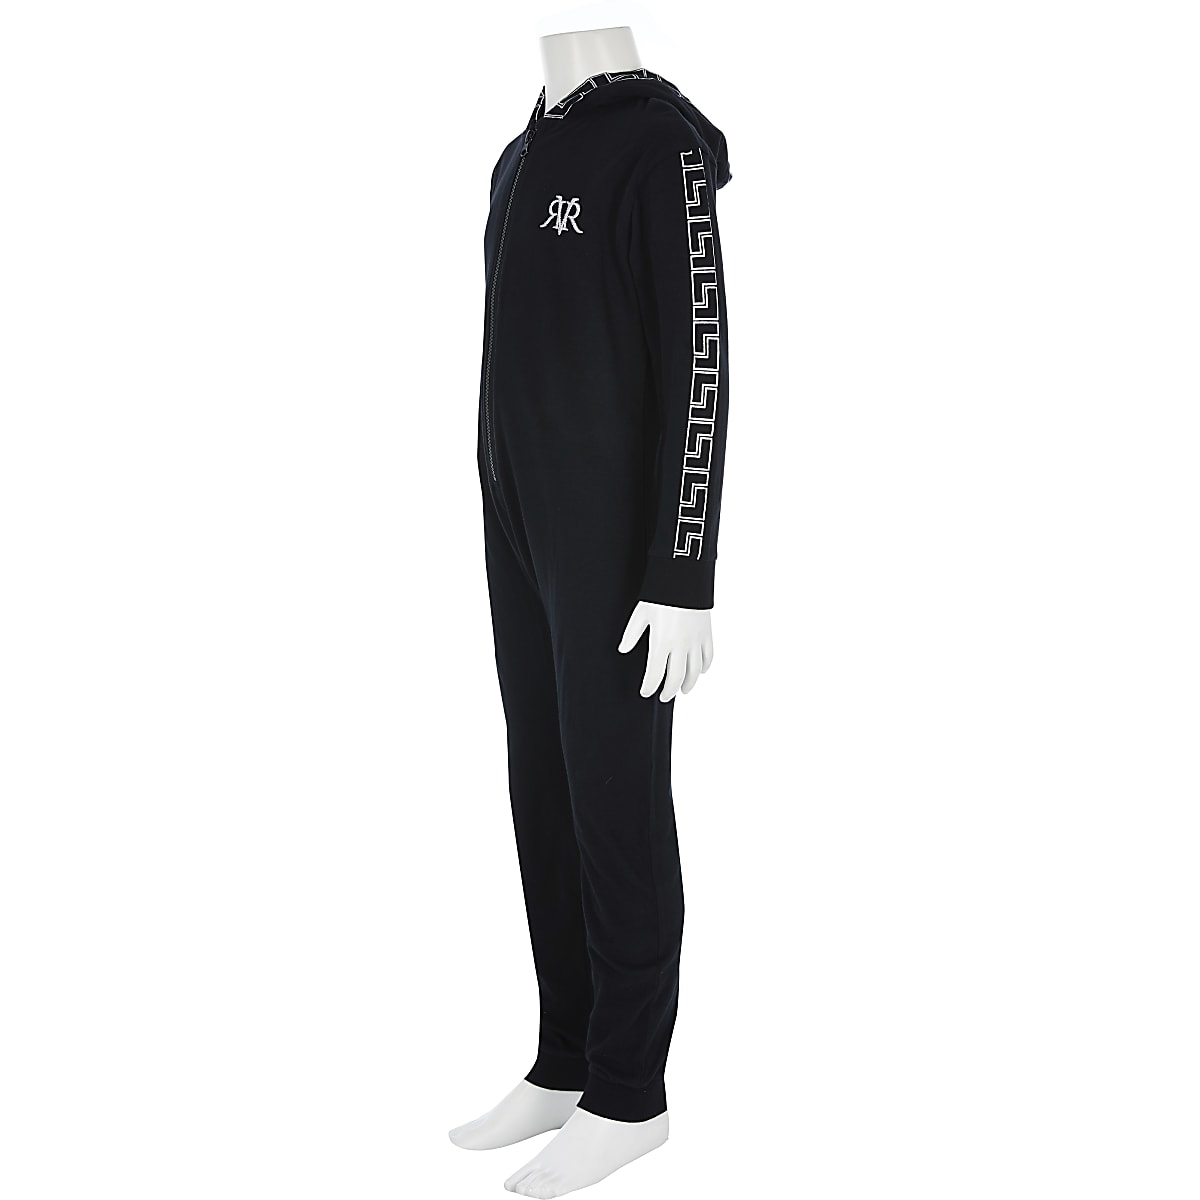 Boys black RI printed onesie